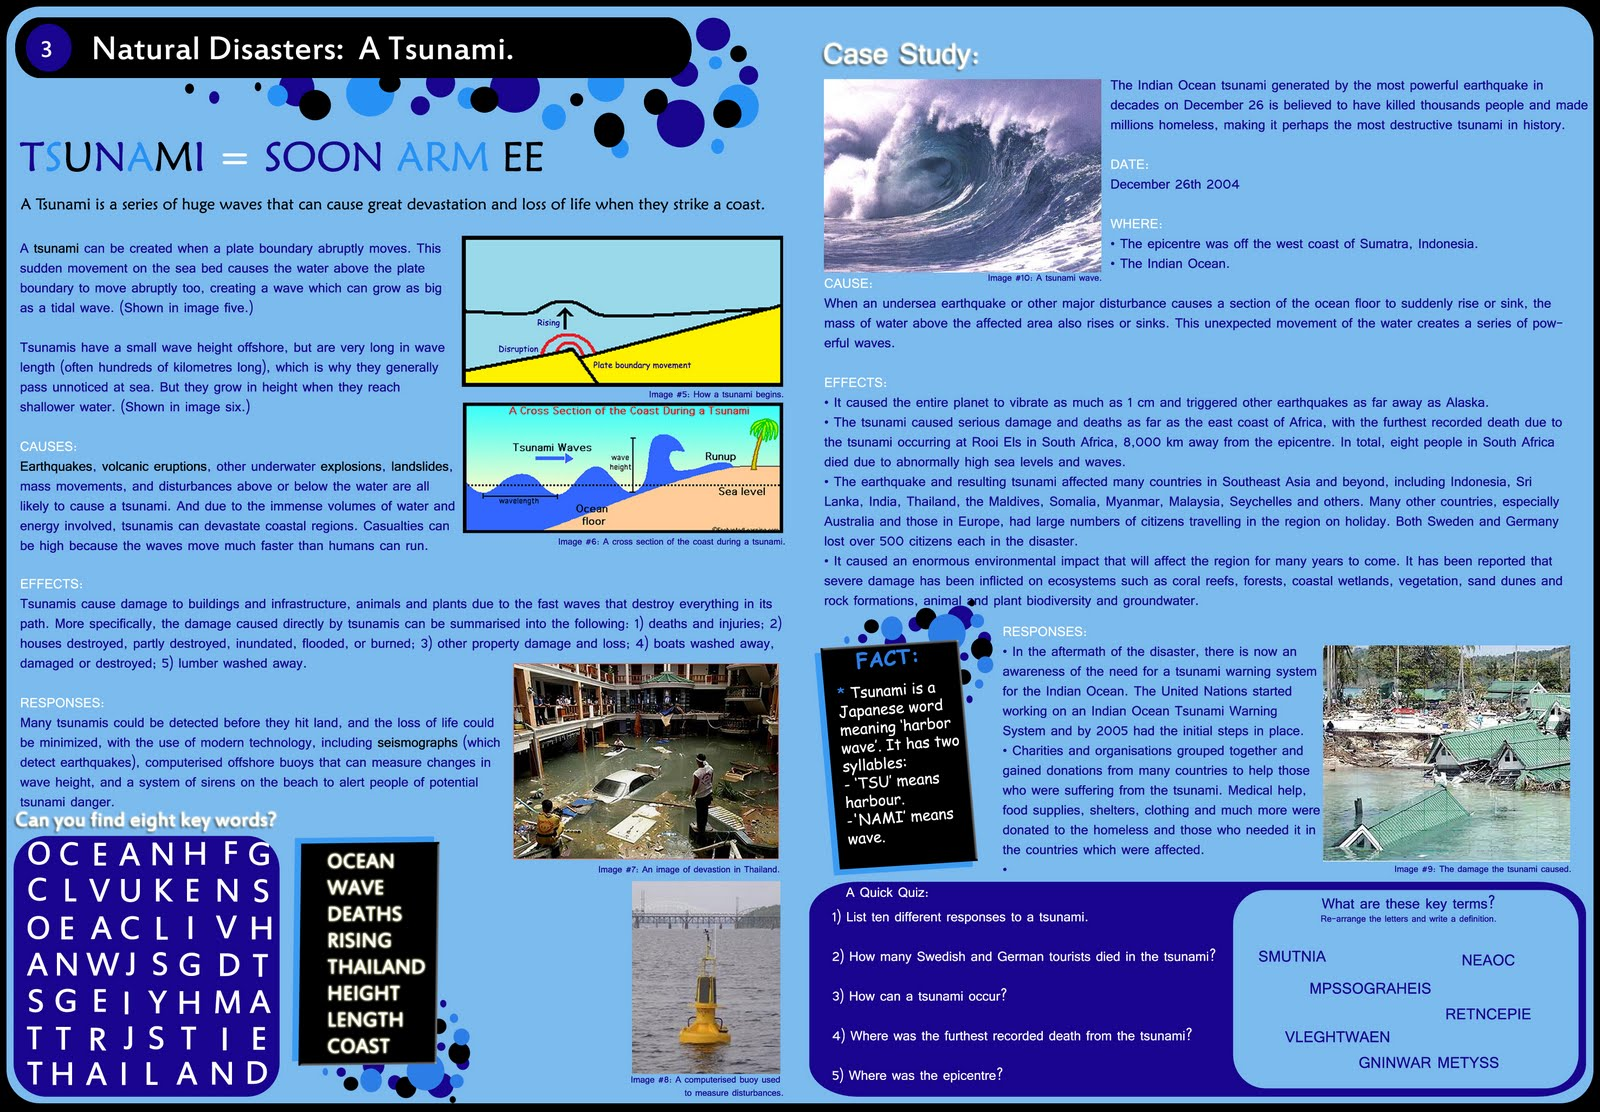 tsunamis have the same impacts on